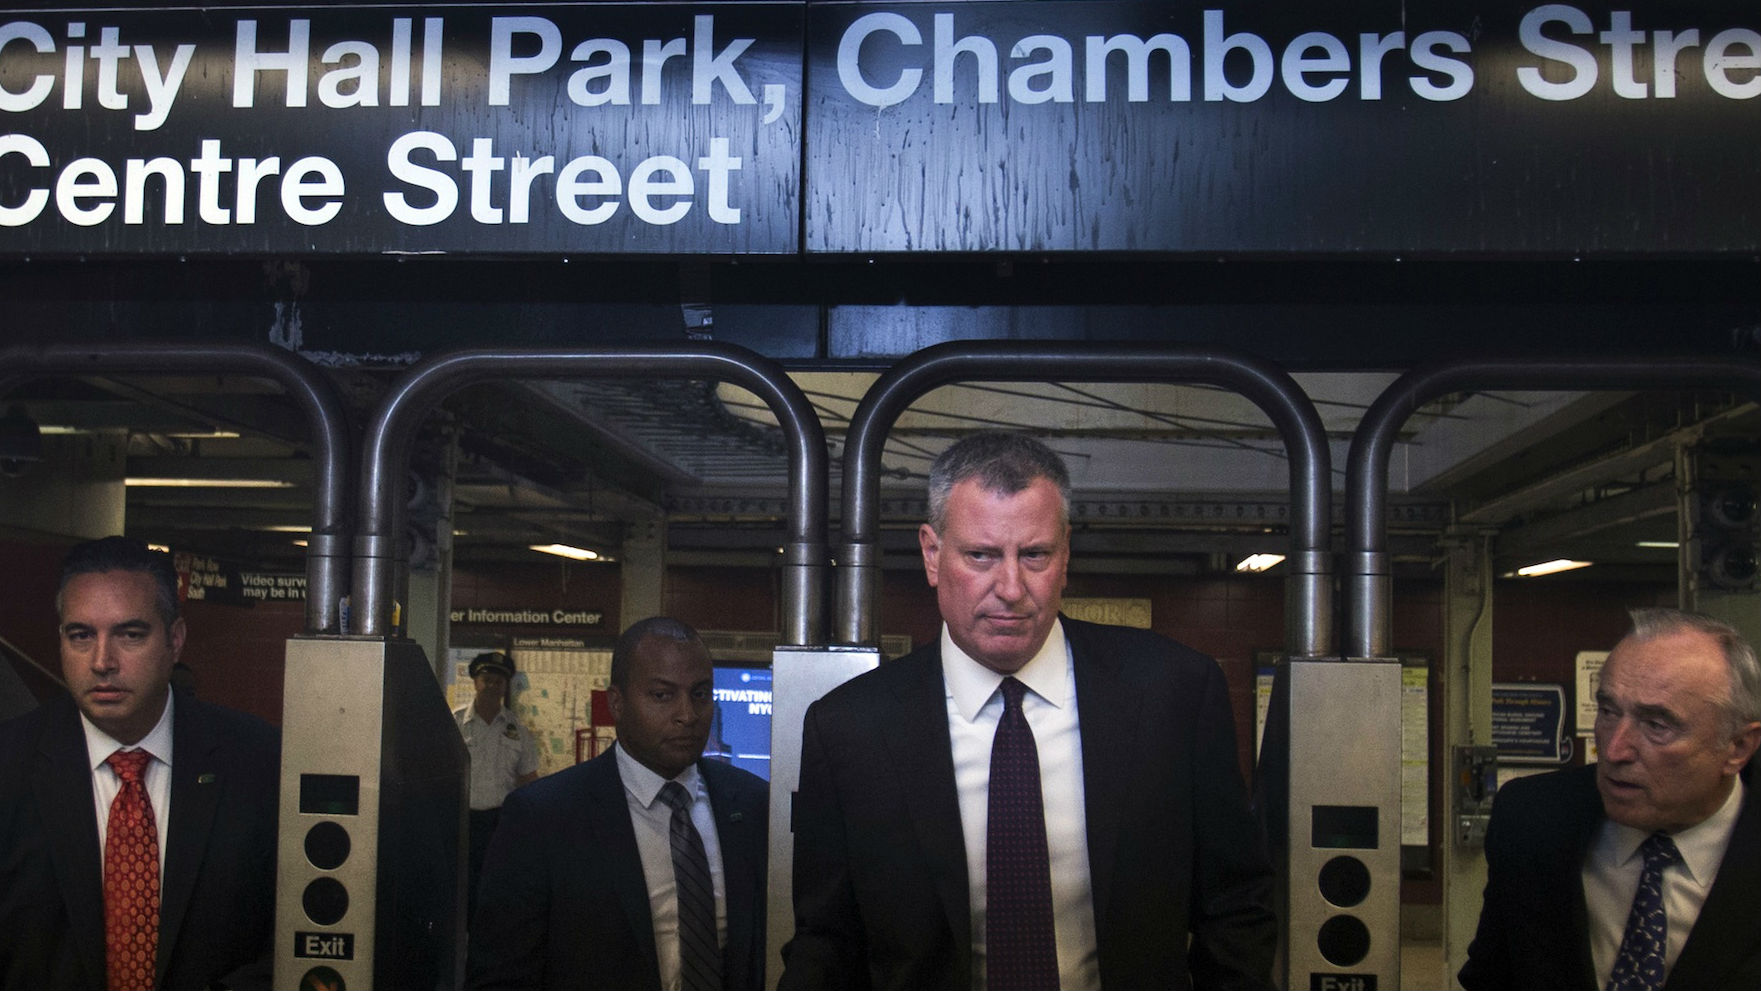 New York Mayor Bill de Blasio (2nd R) and New York City Police Commissioner William Bratton (R) enter the City Hall subway station while on their way to give a news conference in New York September 25, 2014